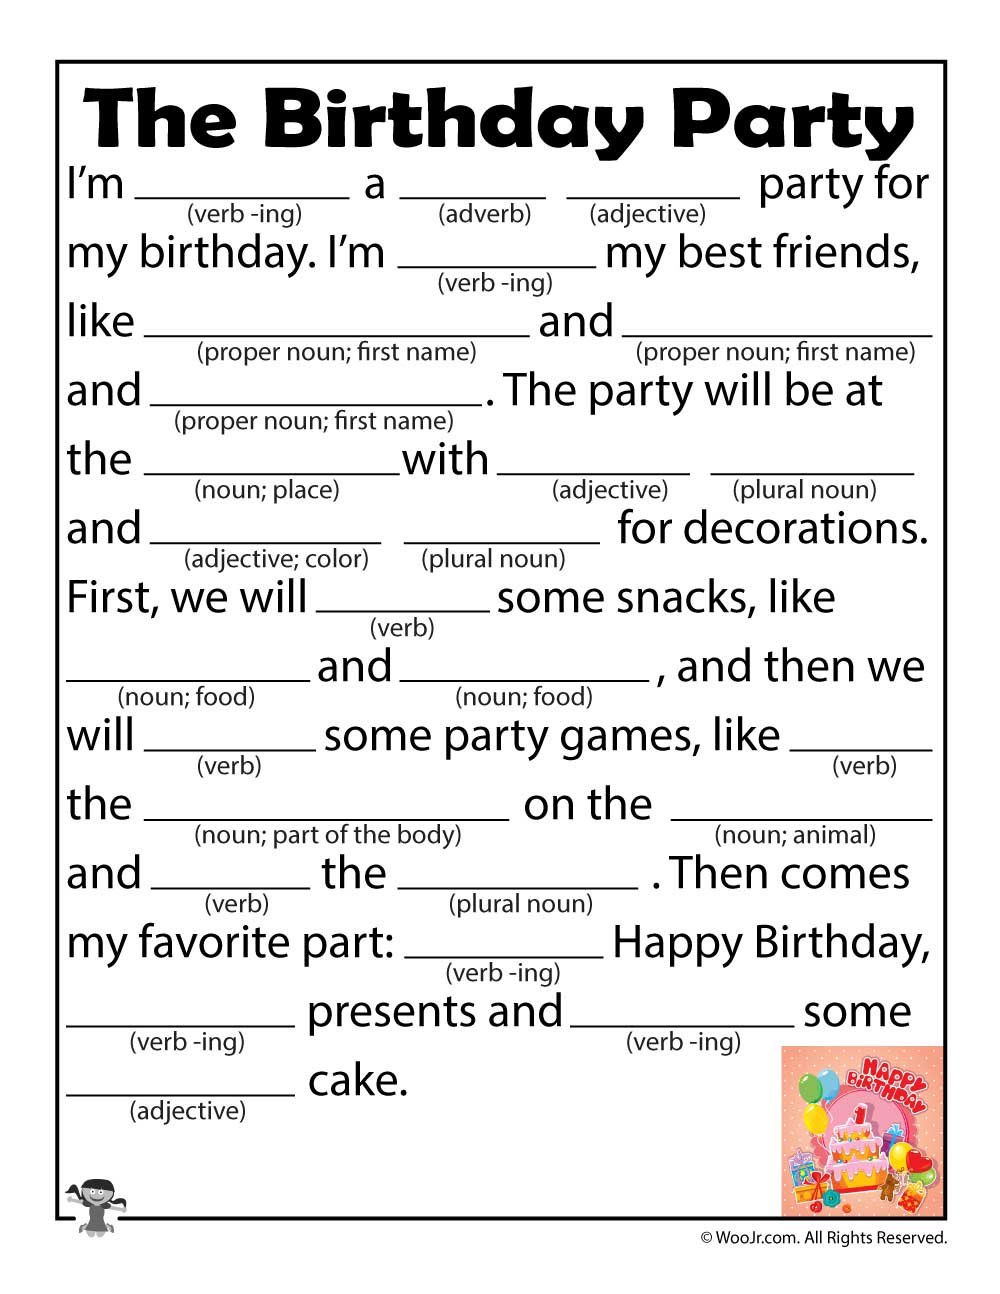 12 Funny Birthday Mad Libs Kittybabylove Com